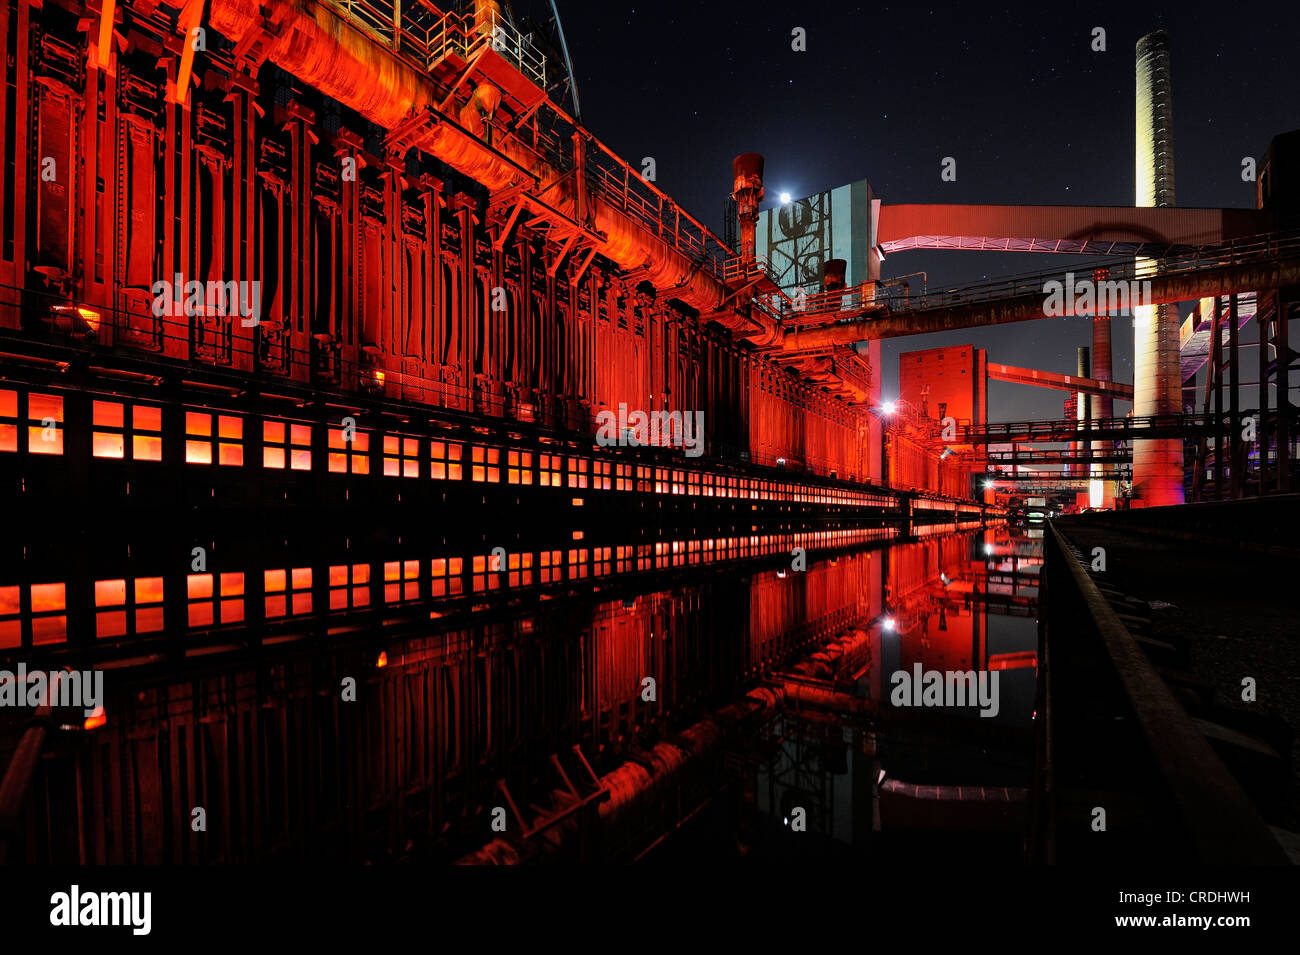 Industrial buildings illuminated at night, Zeche Zollverein Coal Mine, Essen, North Rhine-Westphalia, Germany, Europe - Stock Image